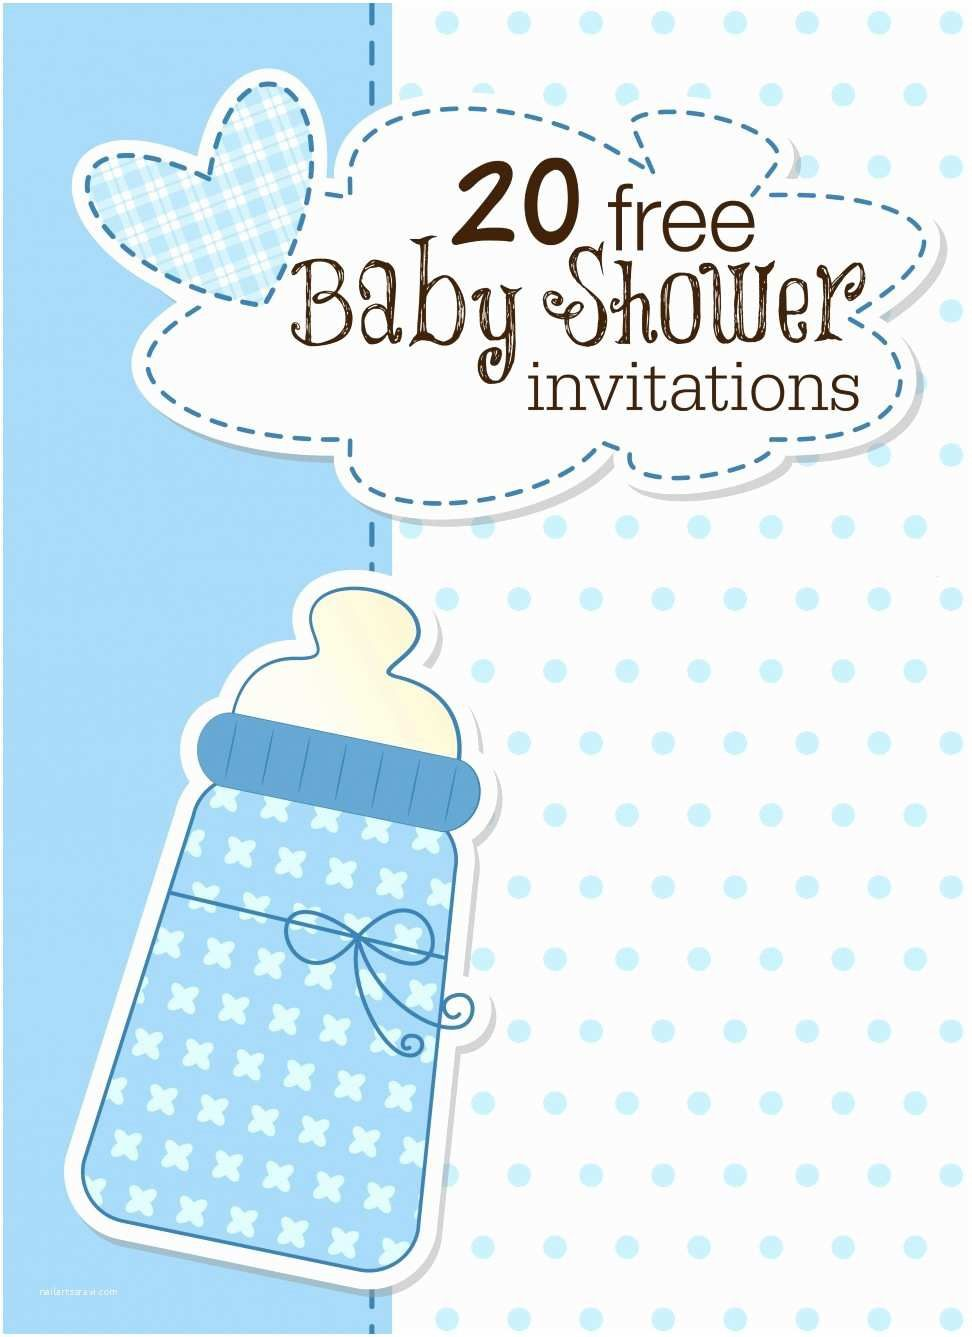 009 Imposing Baby Shower Invitation Free Template High Resolution  Templates Online Printable E-invitation Card Design DownloadFull